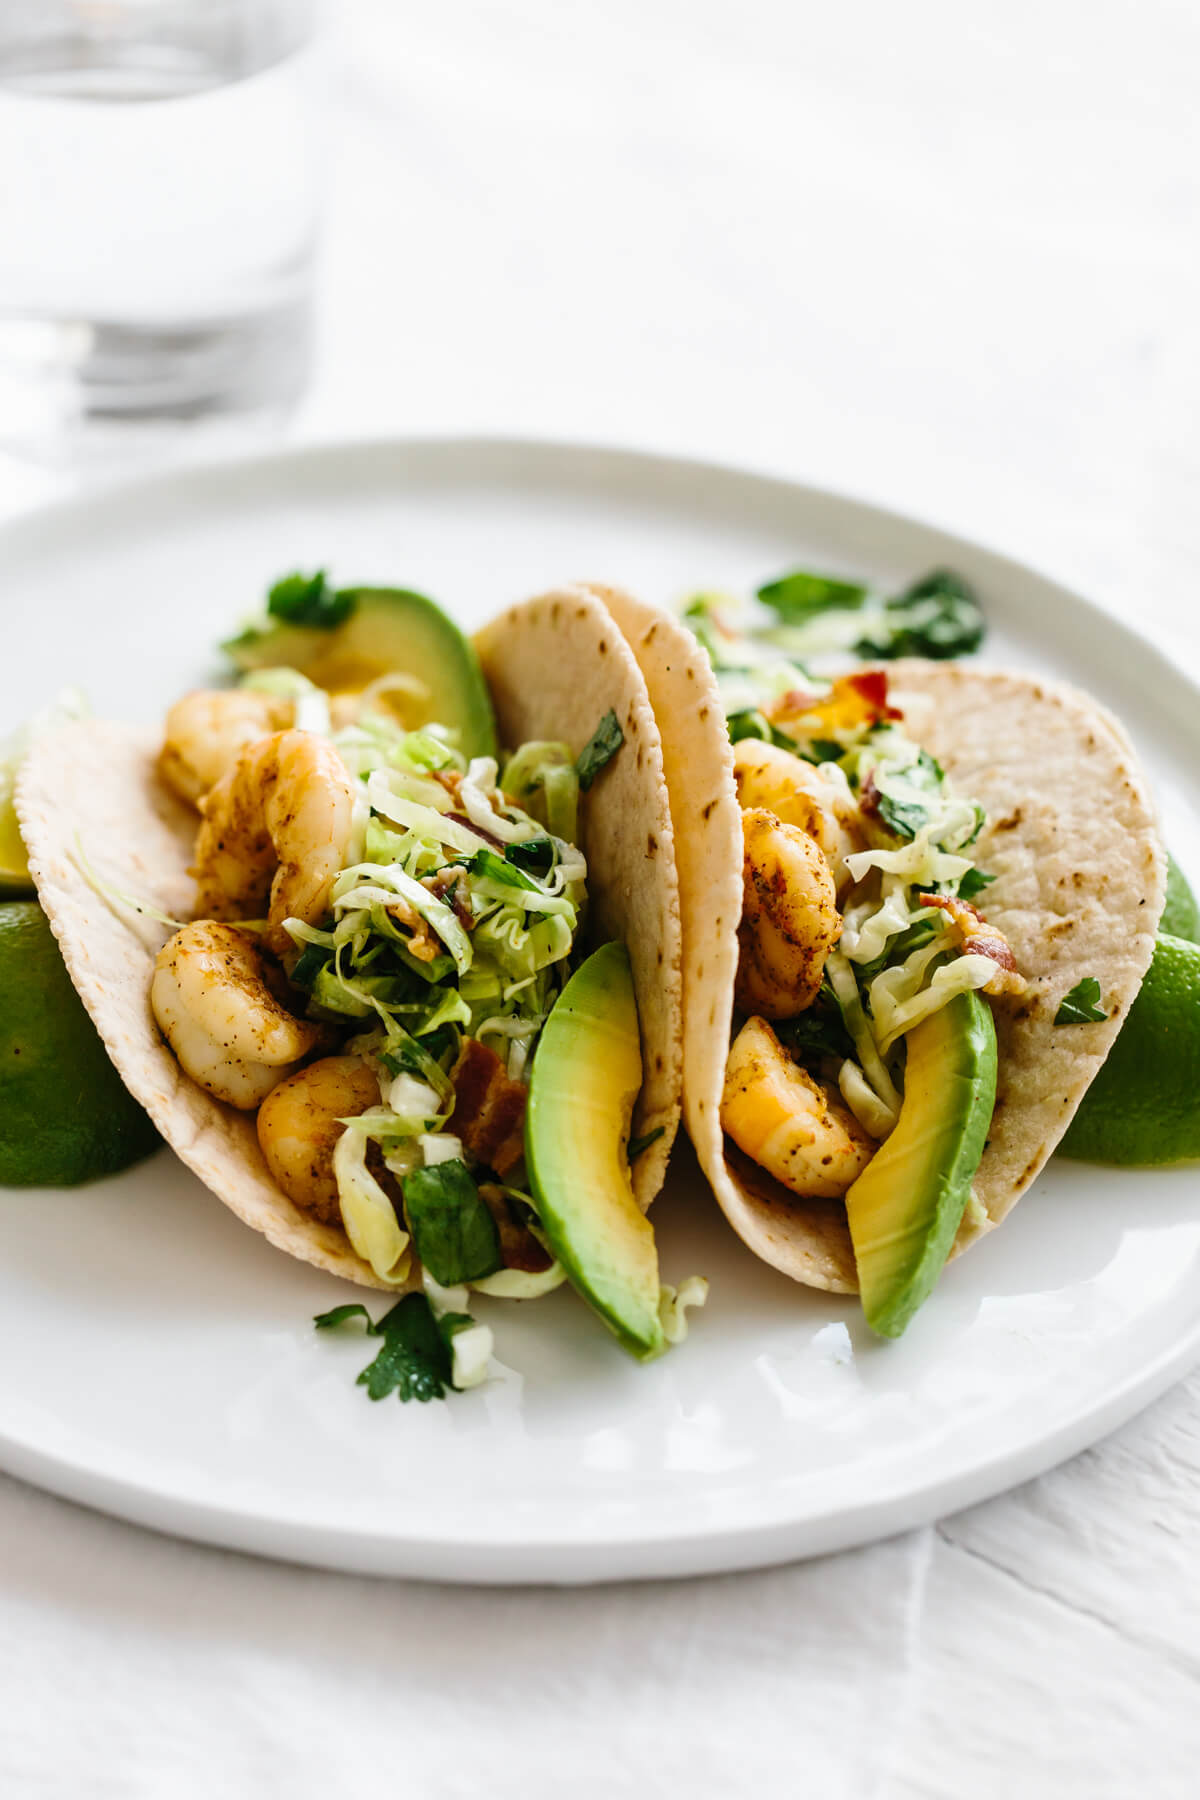 Shrimp tacos on a plate with avocado.